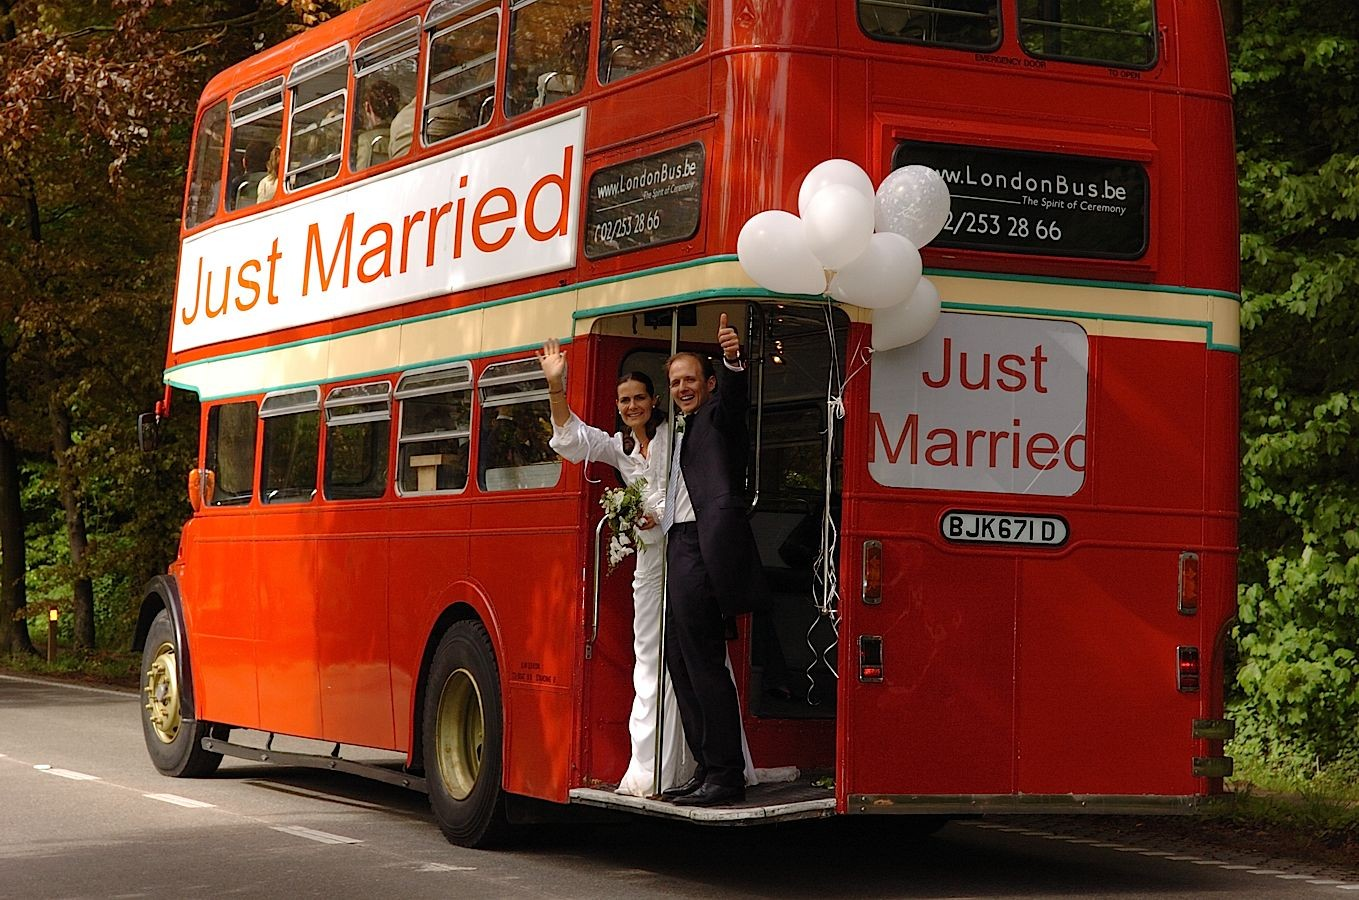 Just married photo, Just married bus with the happiest couple